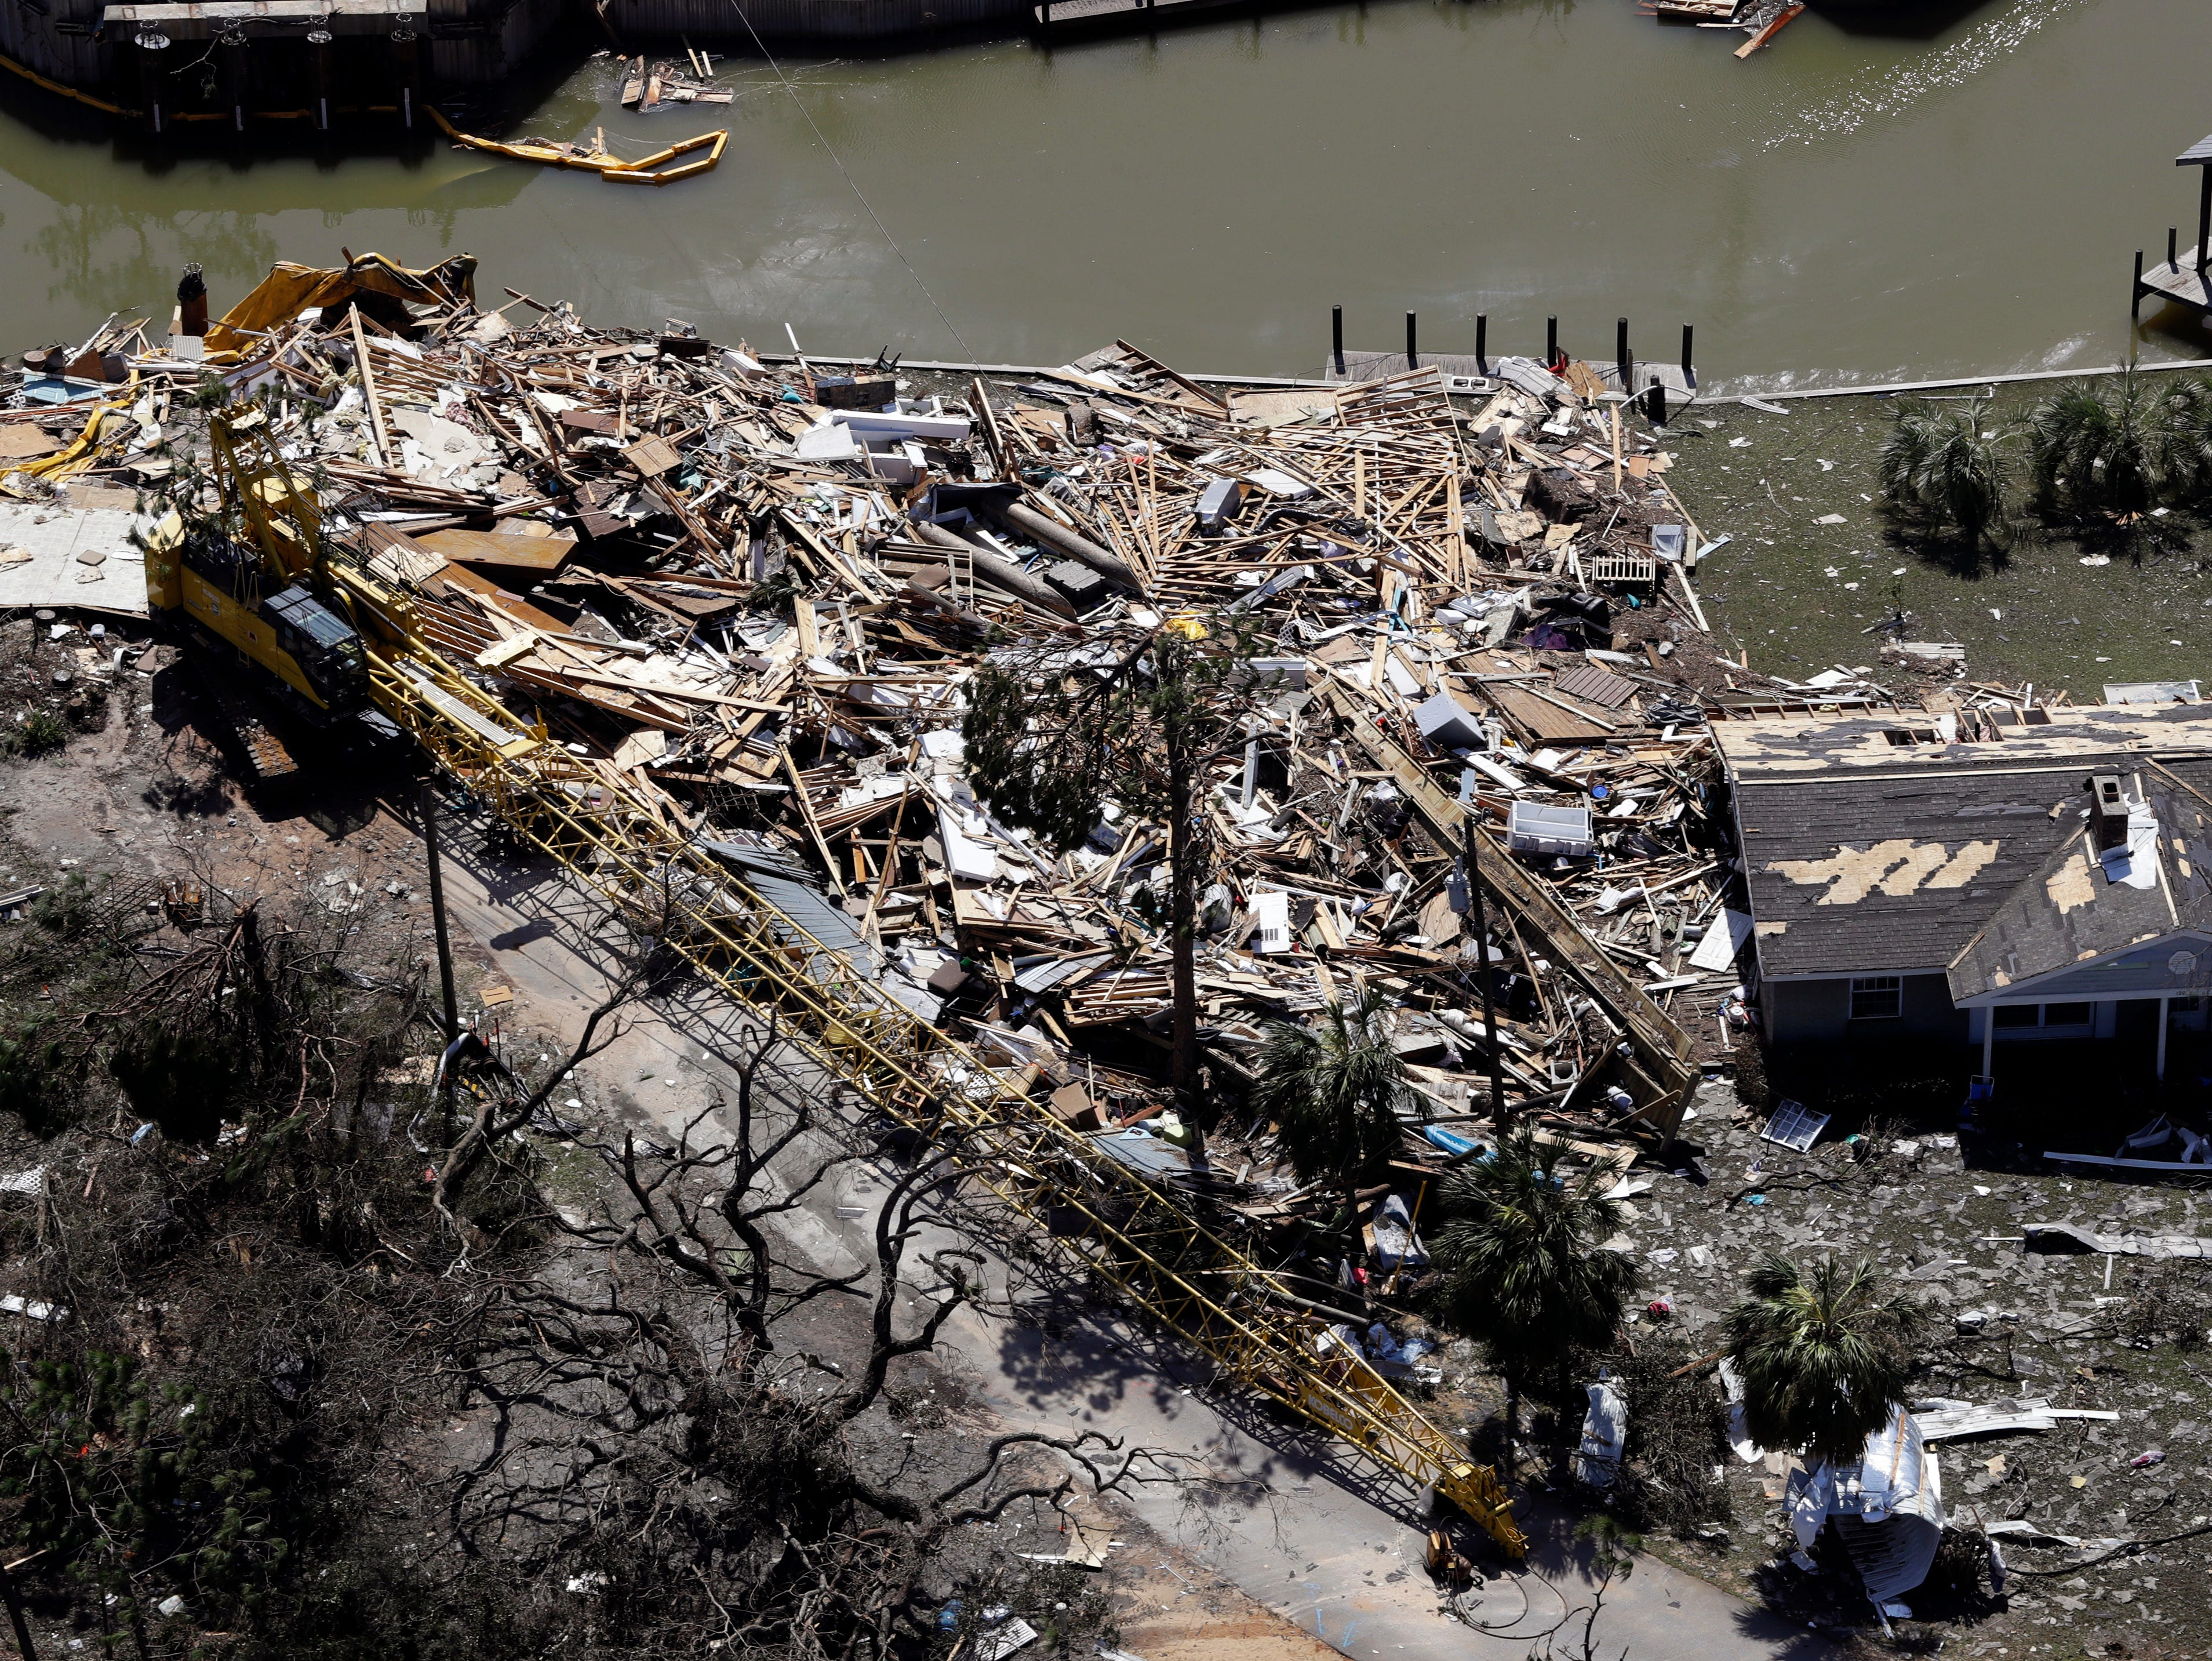 Debris from Hurricane Michael fills a lot Thursday, Oct. 11, 2018, in Mexico Beach, Fla. Hurricane Michael made landfall Wednesday as a Category 4 hurricane with 155 mph (250 kph) winds and a storm surge of 9 feet (2.7 meters). (AP Photo/Chris O'Meara)